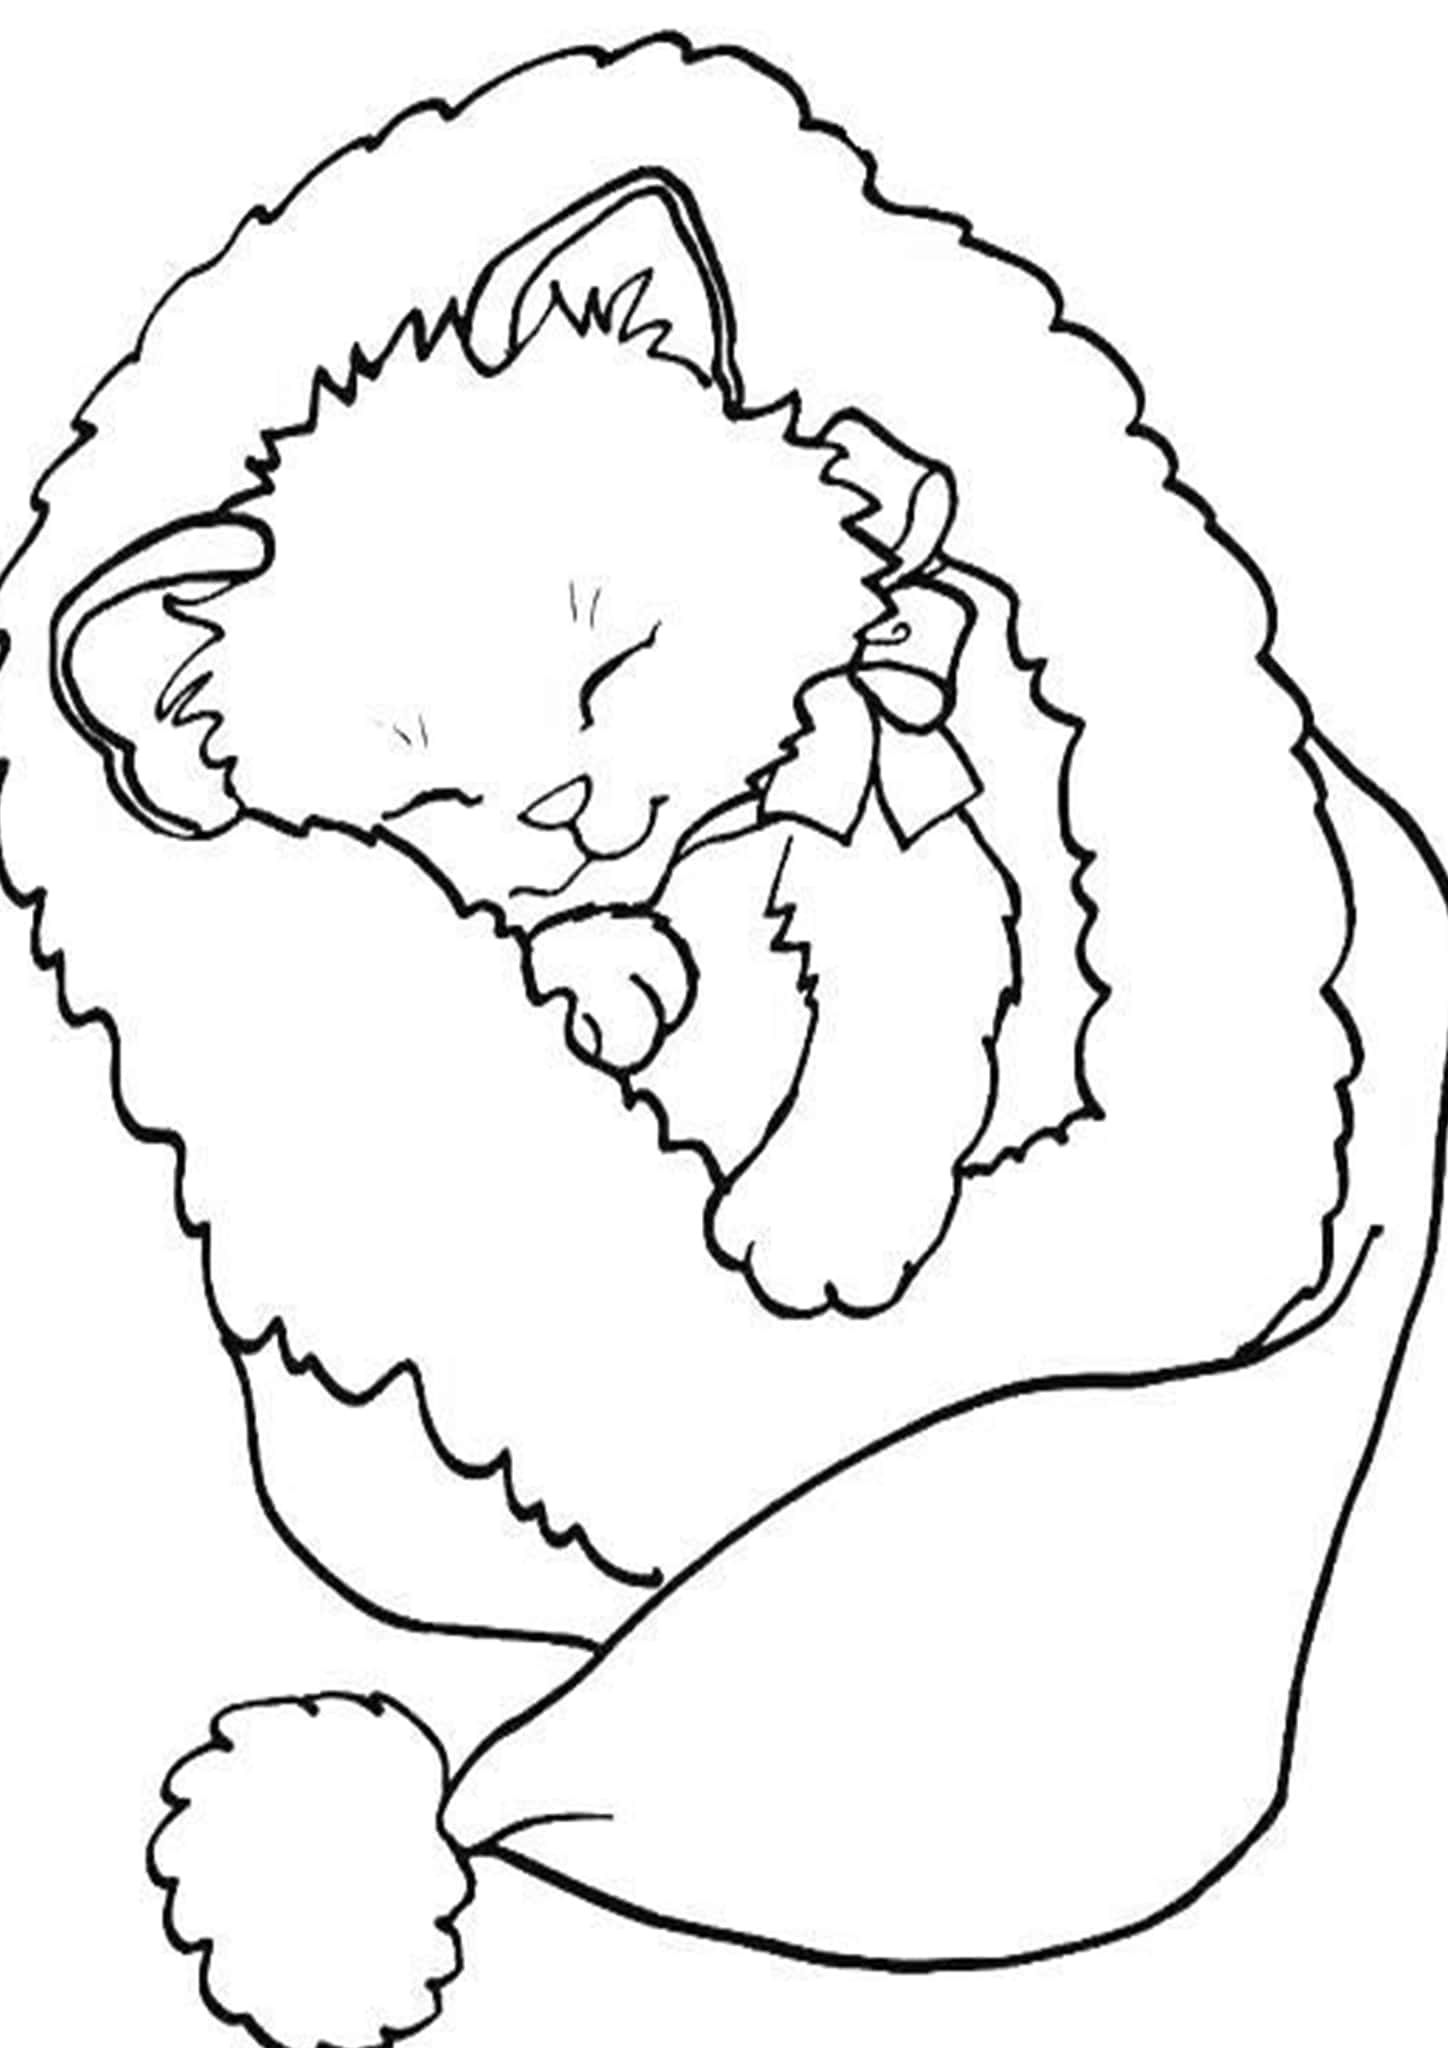 Free Easy To Print Baby Animal Coloring Pages Puppy Coloring Pages Printable Christmas Coloring Pages Cat Coloring Page